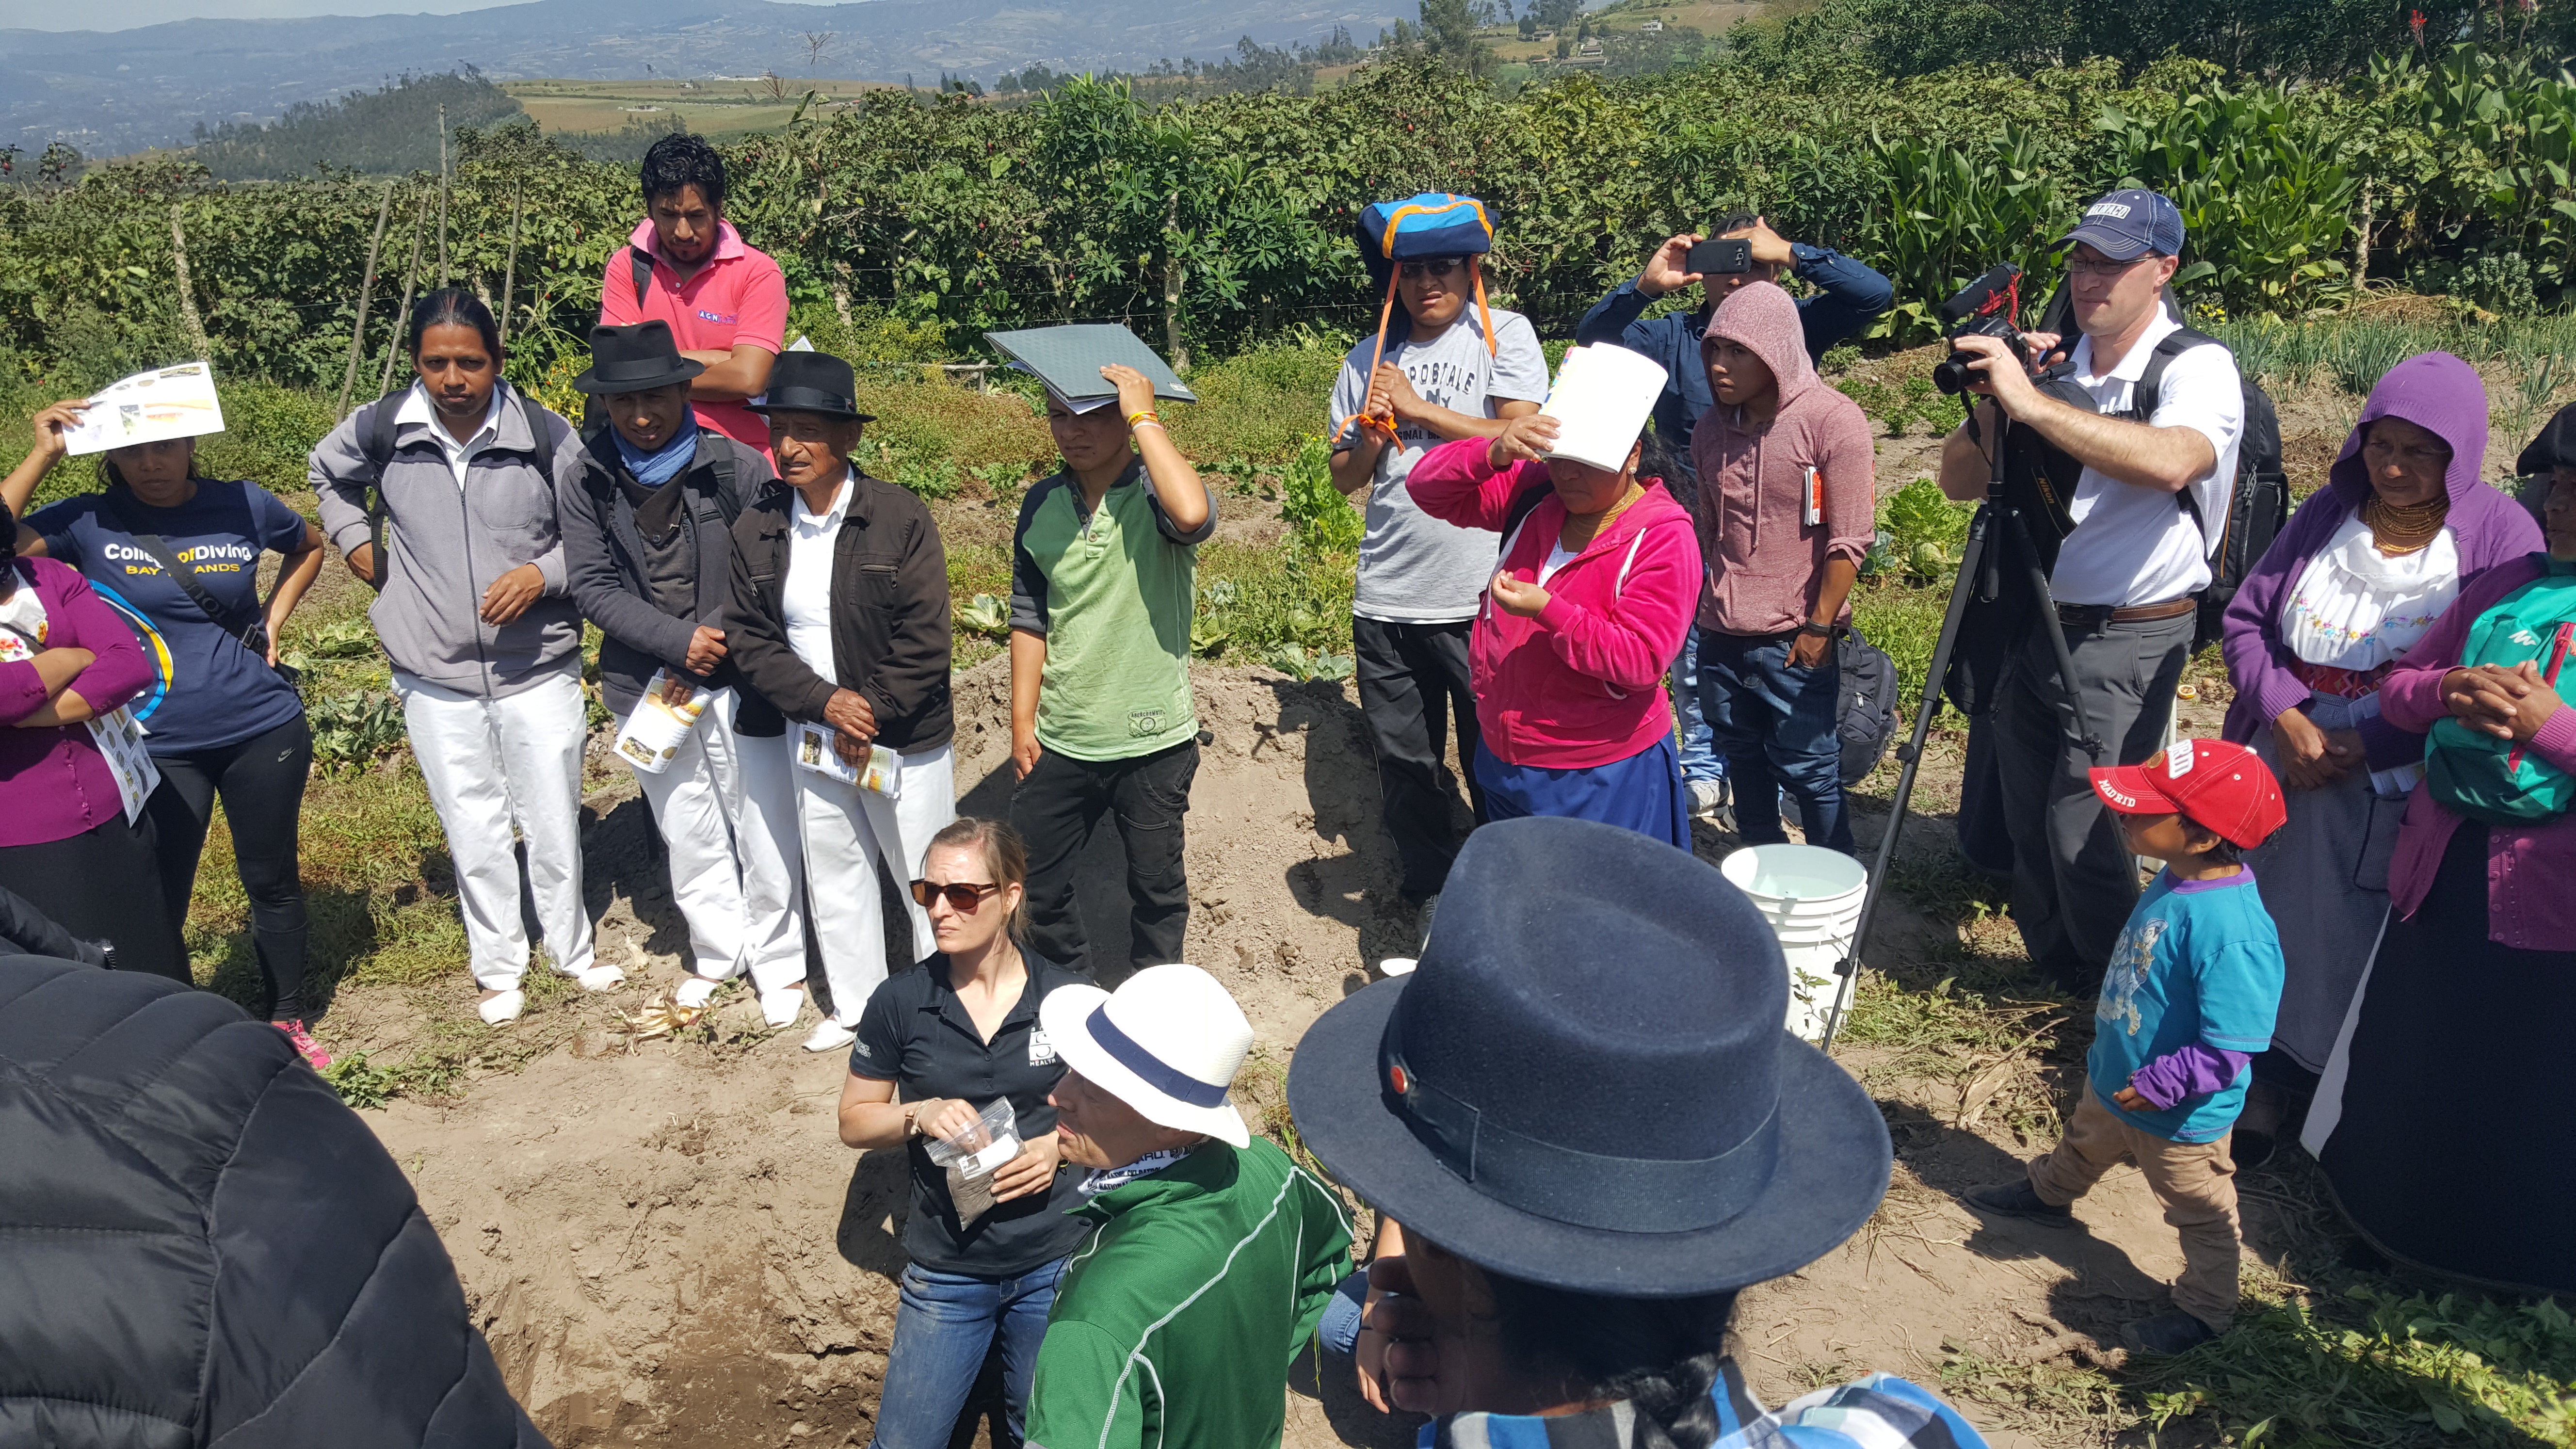 NDSU students and faculty visit farmers to learn about local farming practices and production constraints during a recent trip to Ecuador for a special topics course. (NDSU photo)